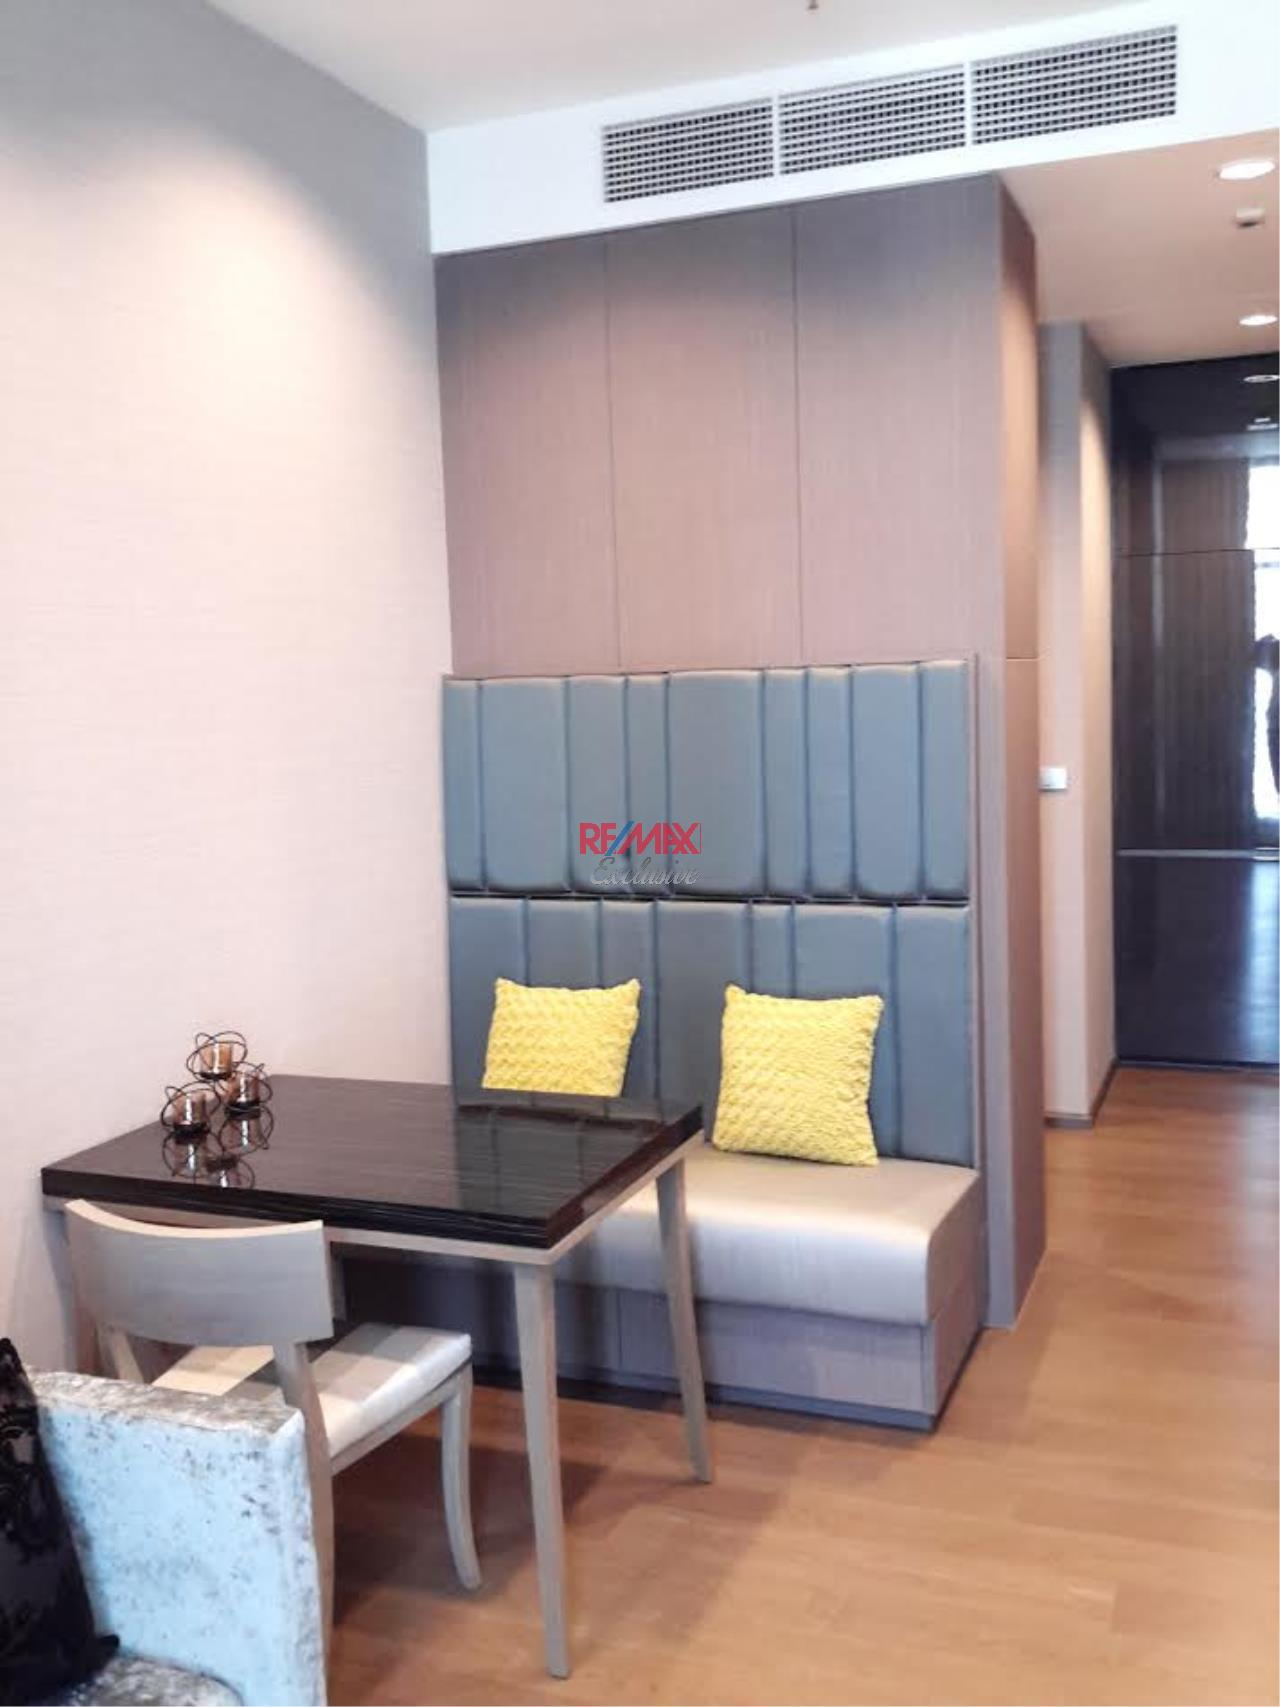 RE/MAX Exclusive Agency's The Diplomat Sathorn 1 Bedroom for rent 40,000 THB 15